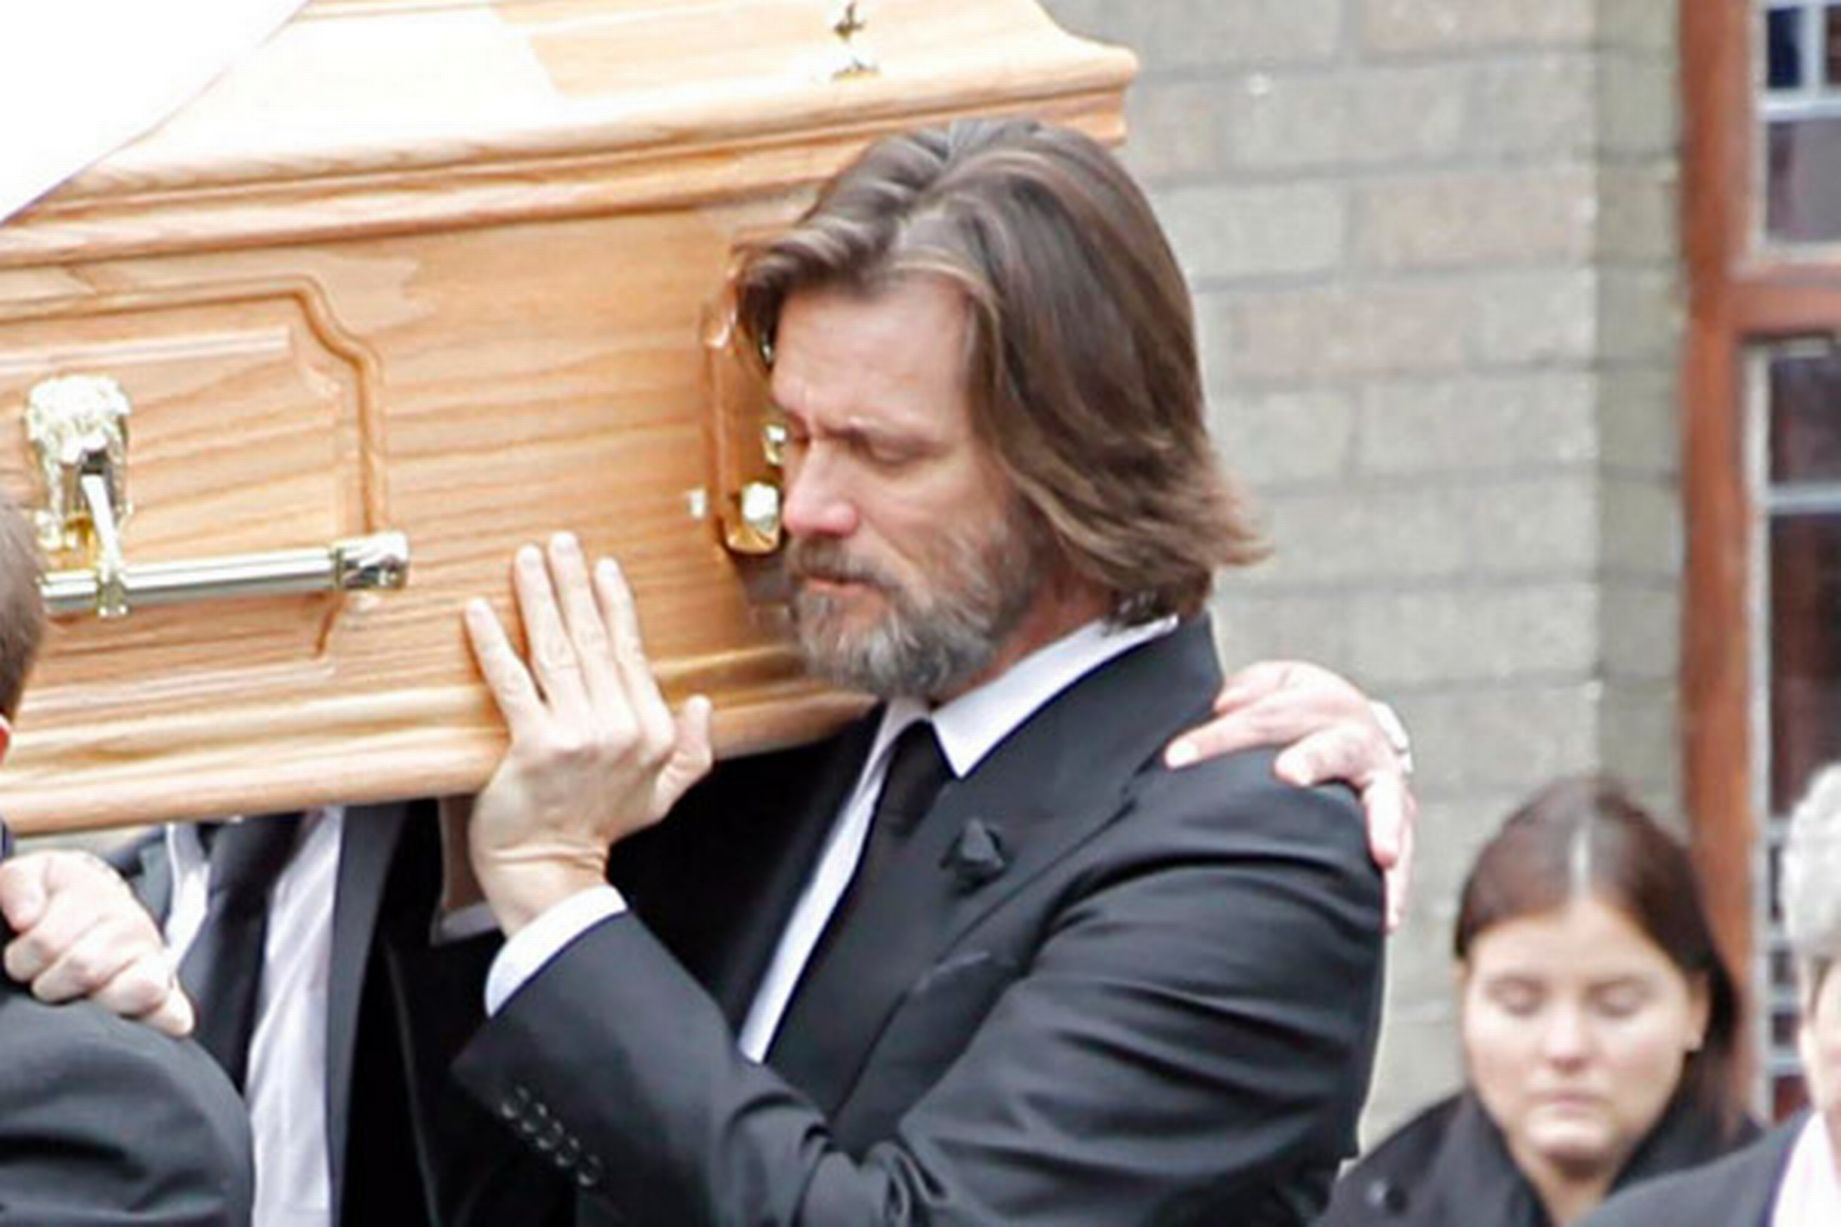 Jim-Carrey-carries-the-coffin-of-ex-girlfriend-from-The-Lady-Fatima-church-to-the-burial-grounds-she-will-be-laid-to23